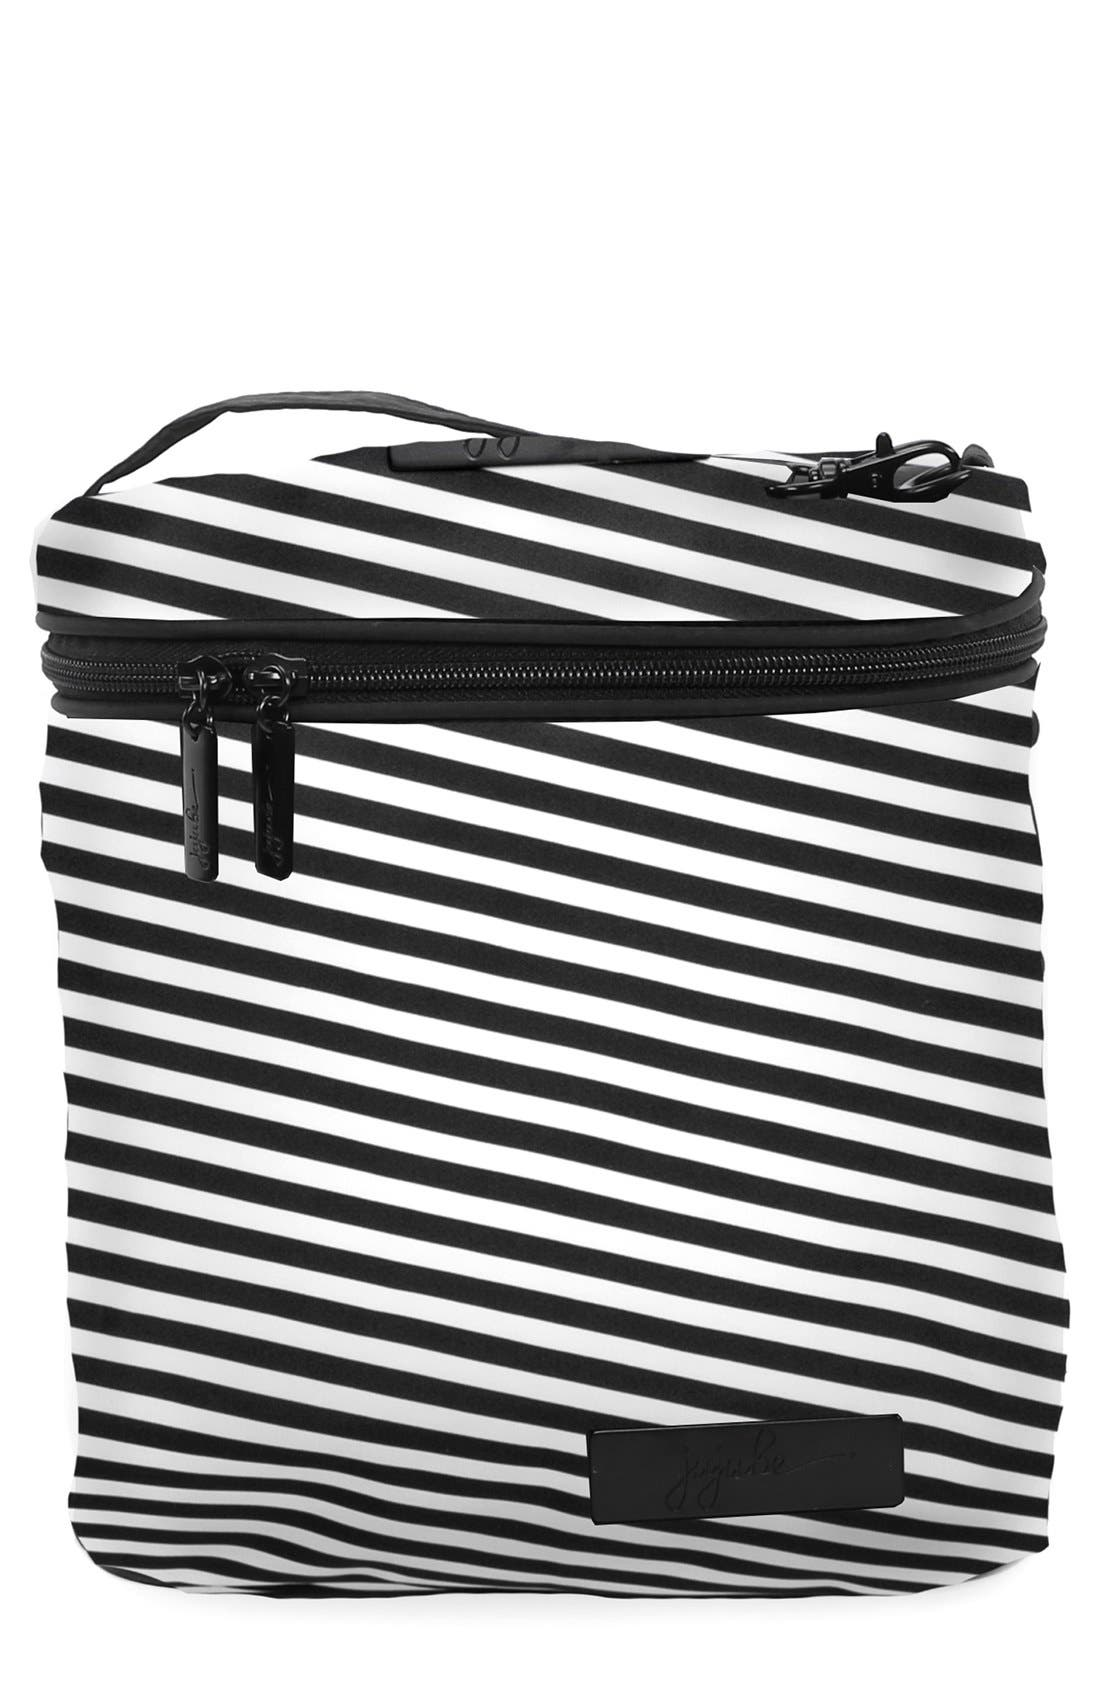 Main Image - Ju-Ju-Be 'Fuel Cell - Onyx Collection' Lunch Bag